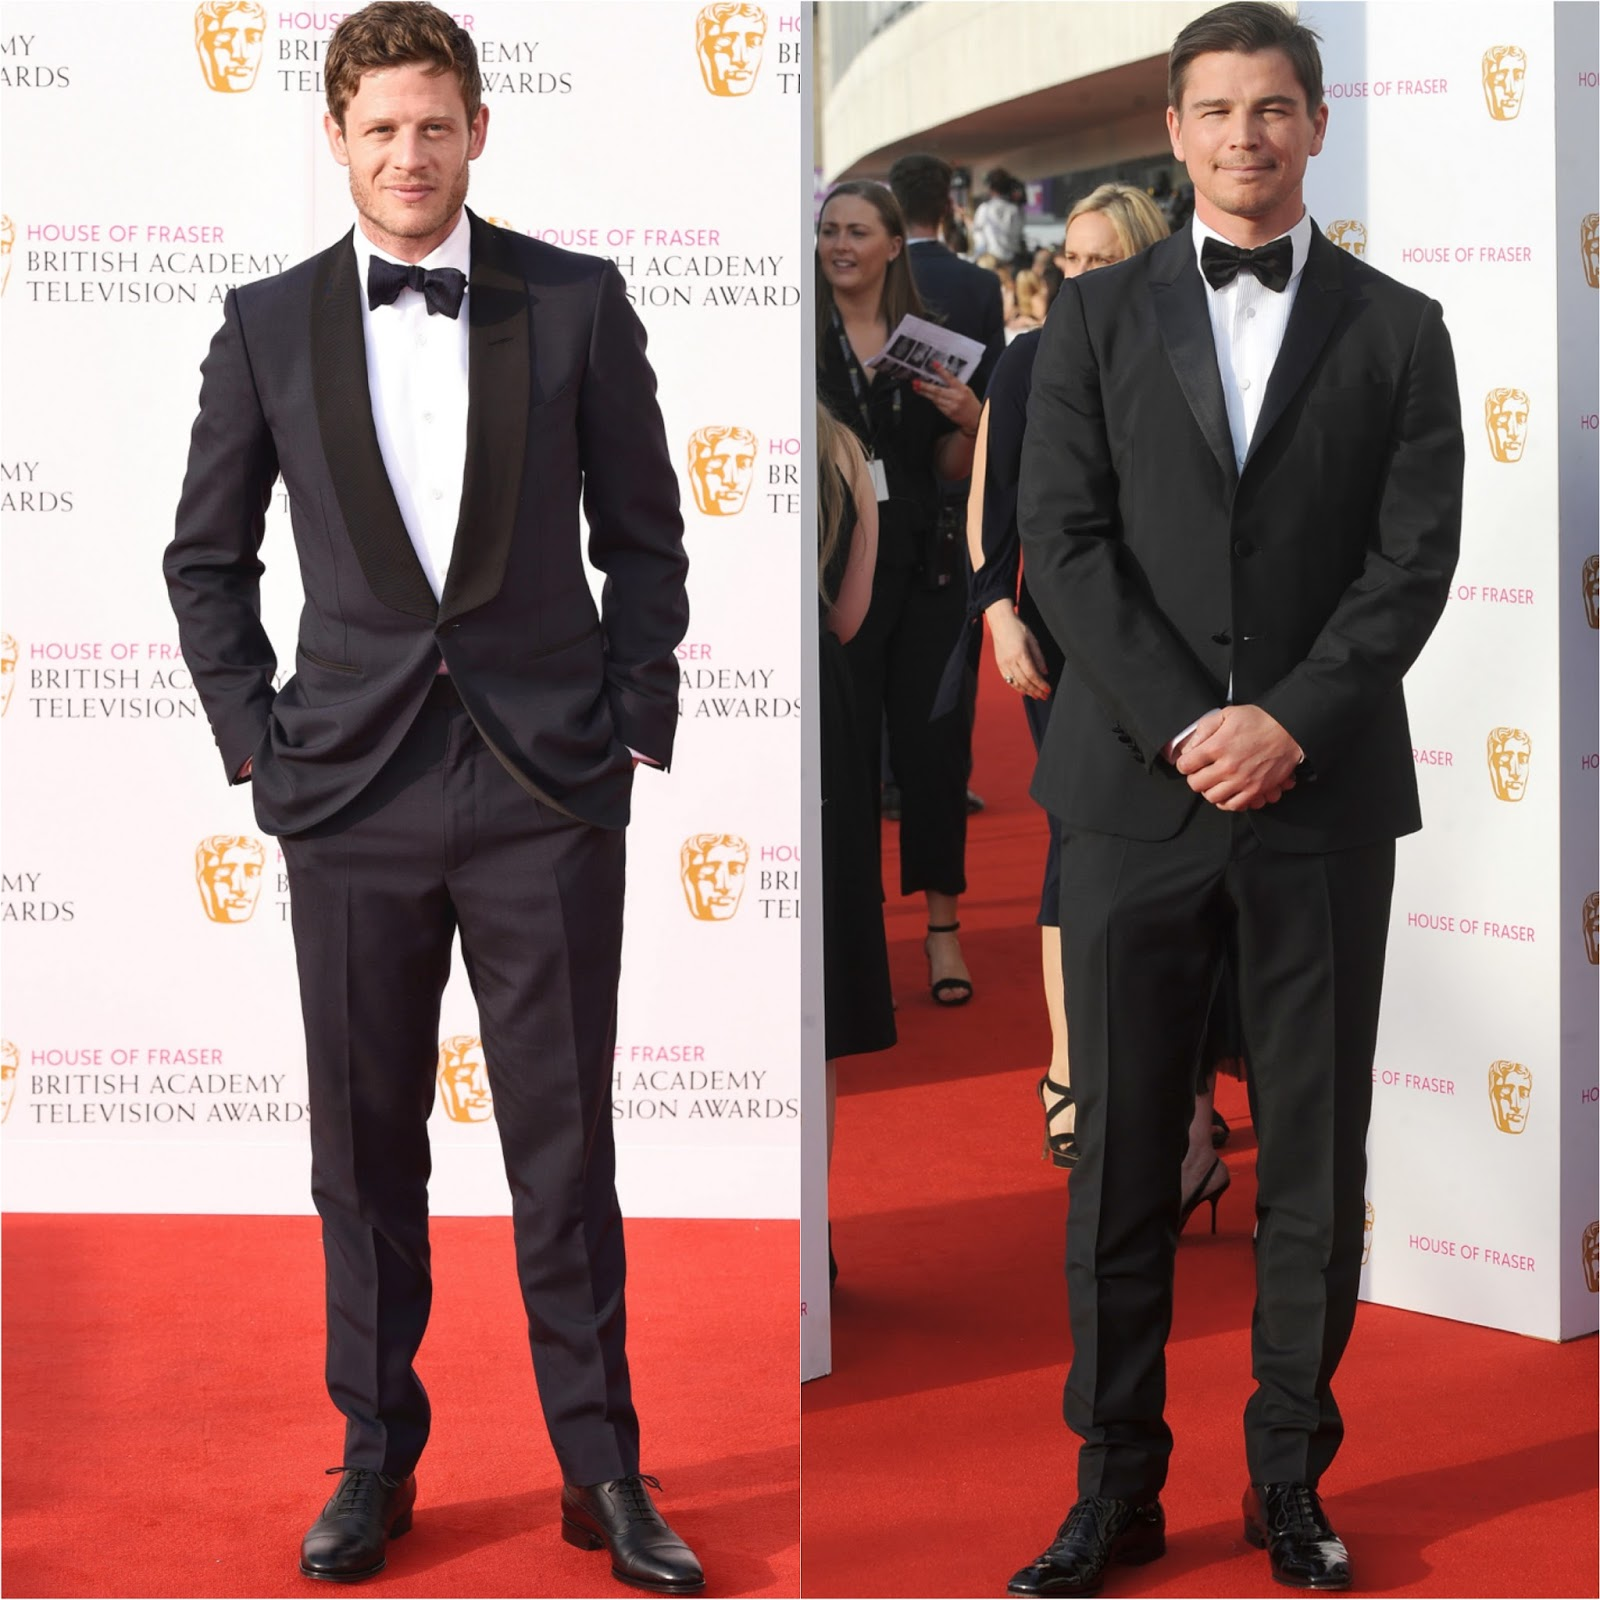 Black dress house of fraser - His Tux Was Styled Simply With A White Button Down Shirt A Black Bow Tie And Black Suede Dress Shoes The Unflattering Trousers Is What Takes Away From His